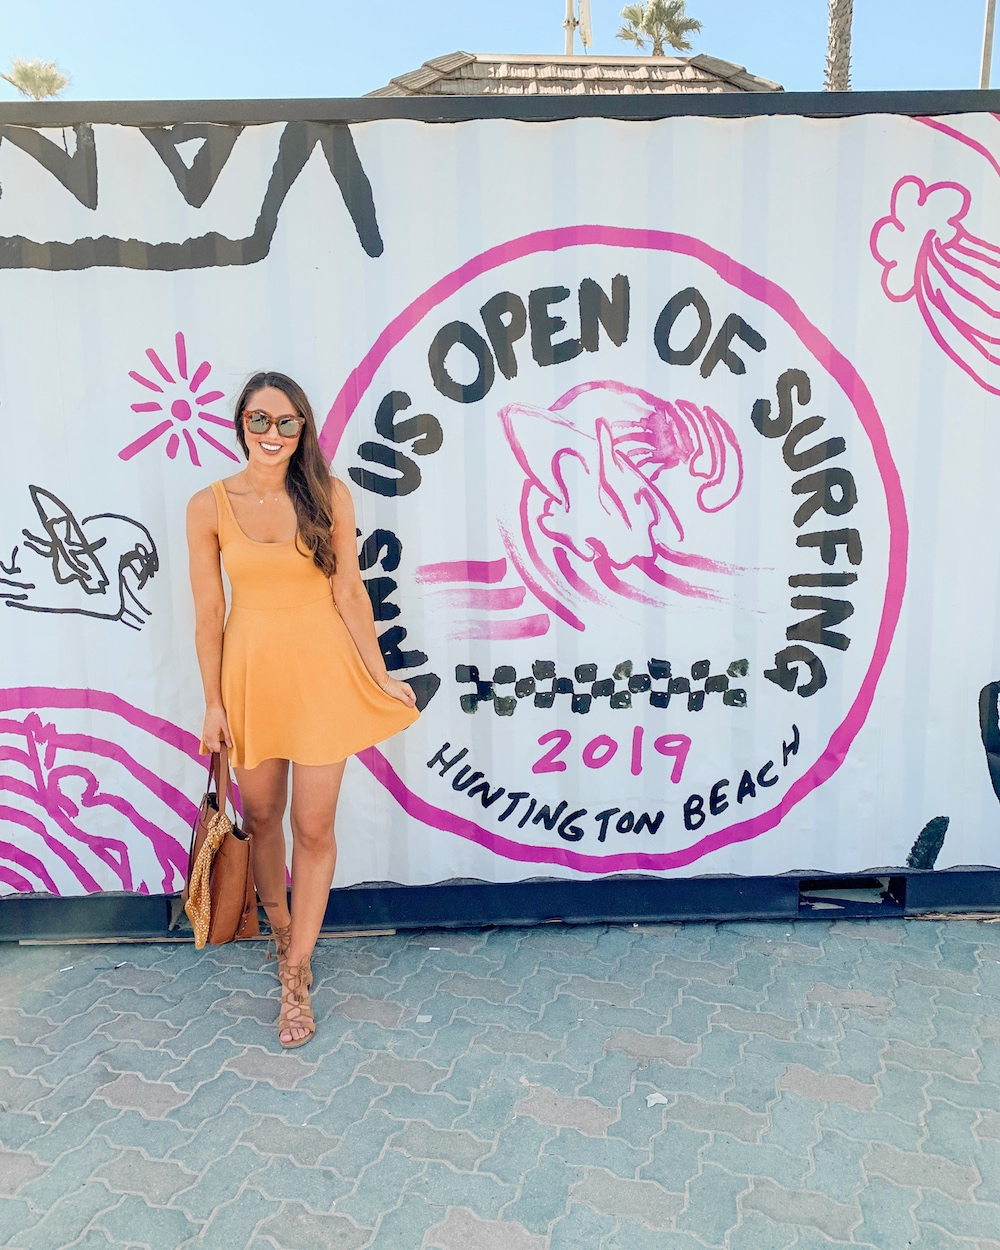 US Open of Surfing 2019 Huntington Beach